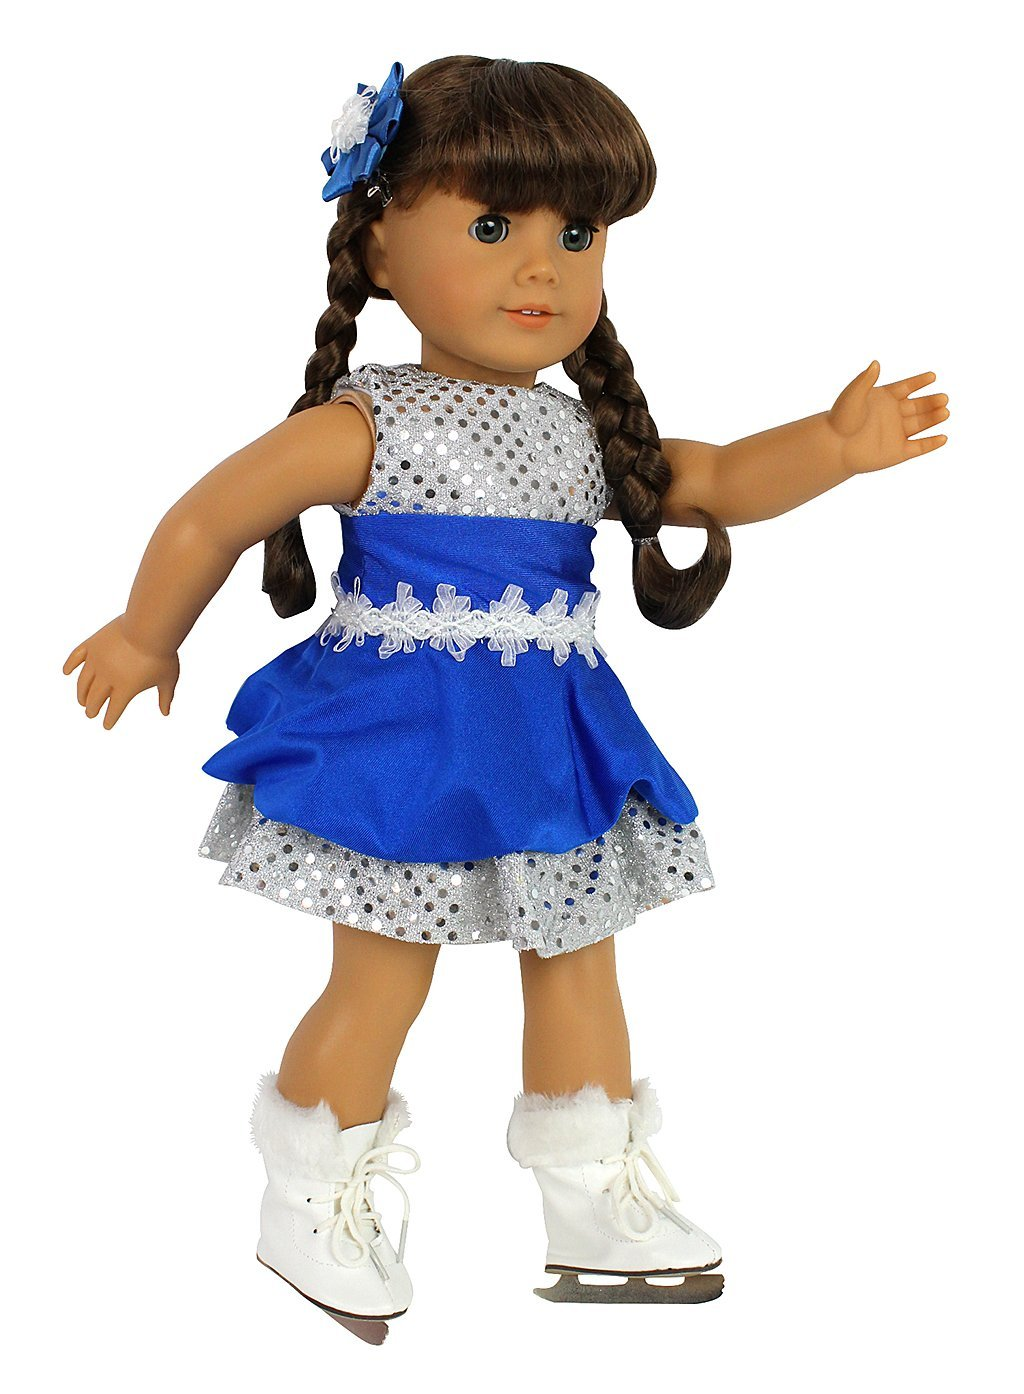 Ice Skating Doll Outfit and Skates for 18″ Dolls – SALE ALERT